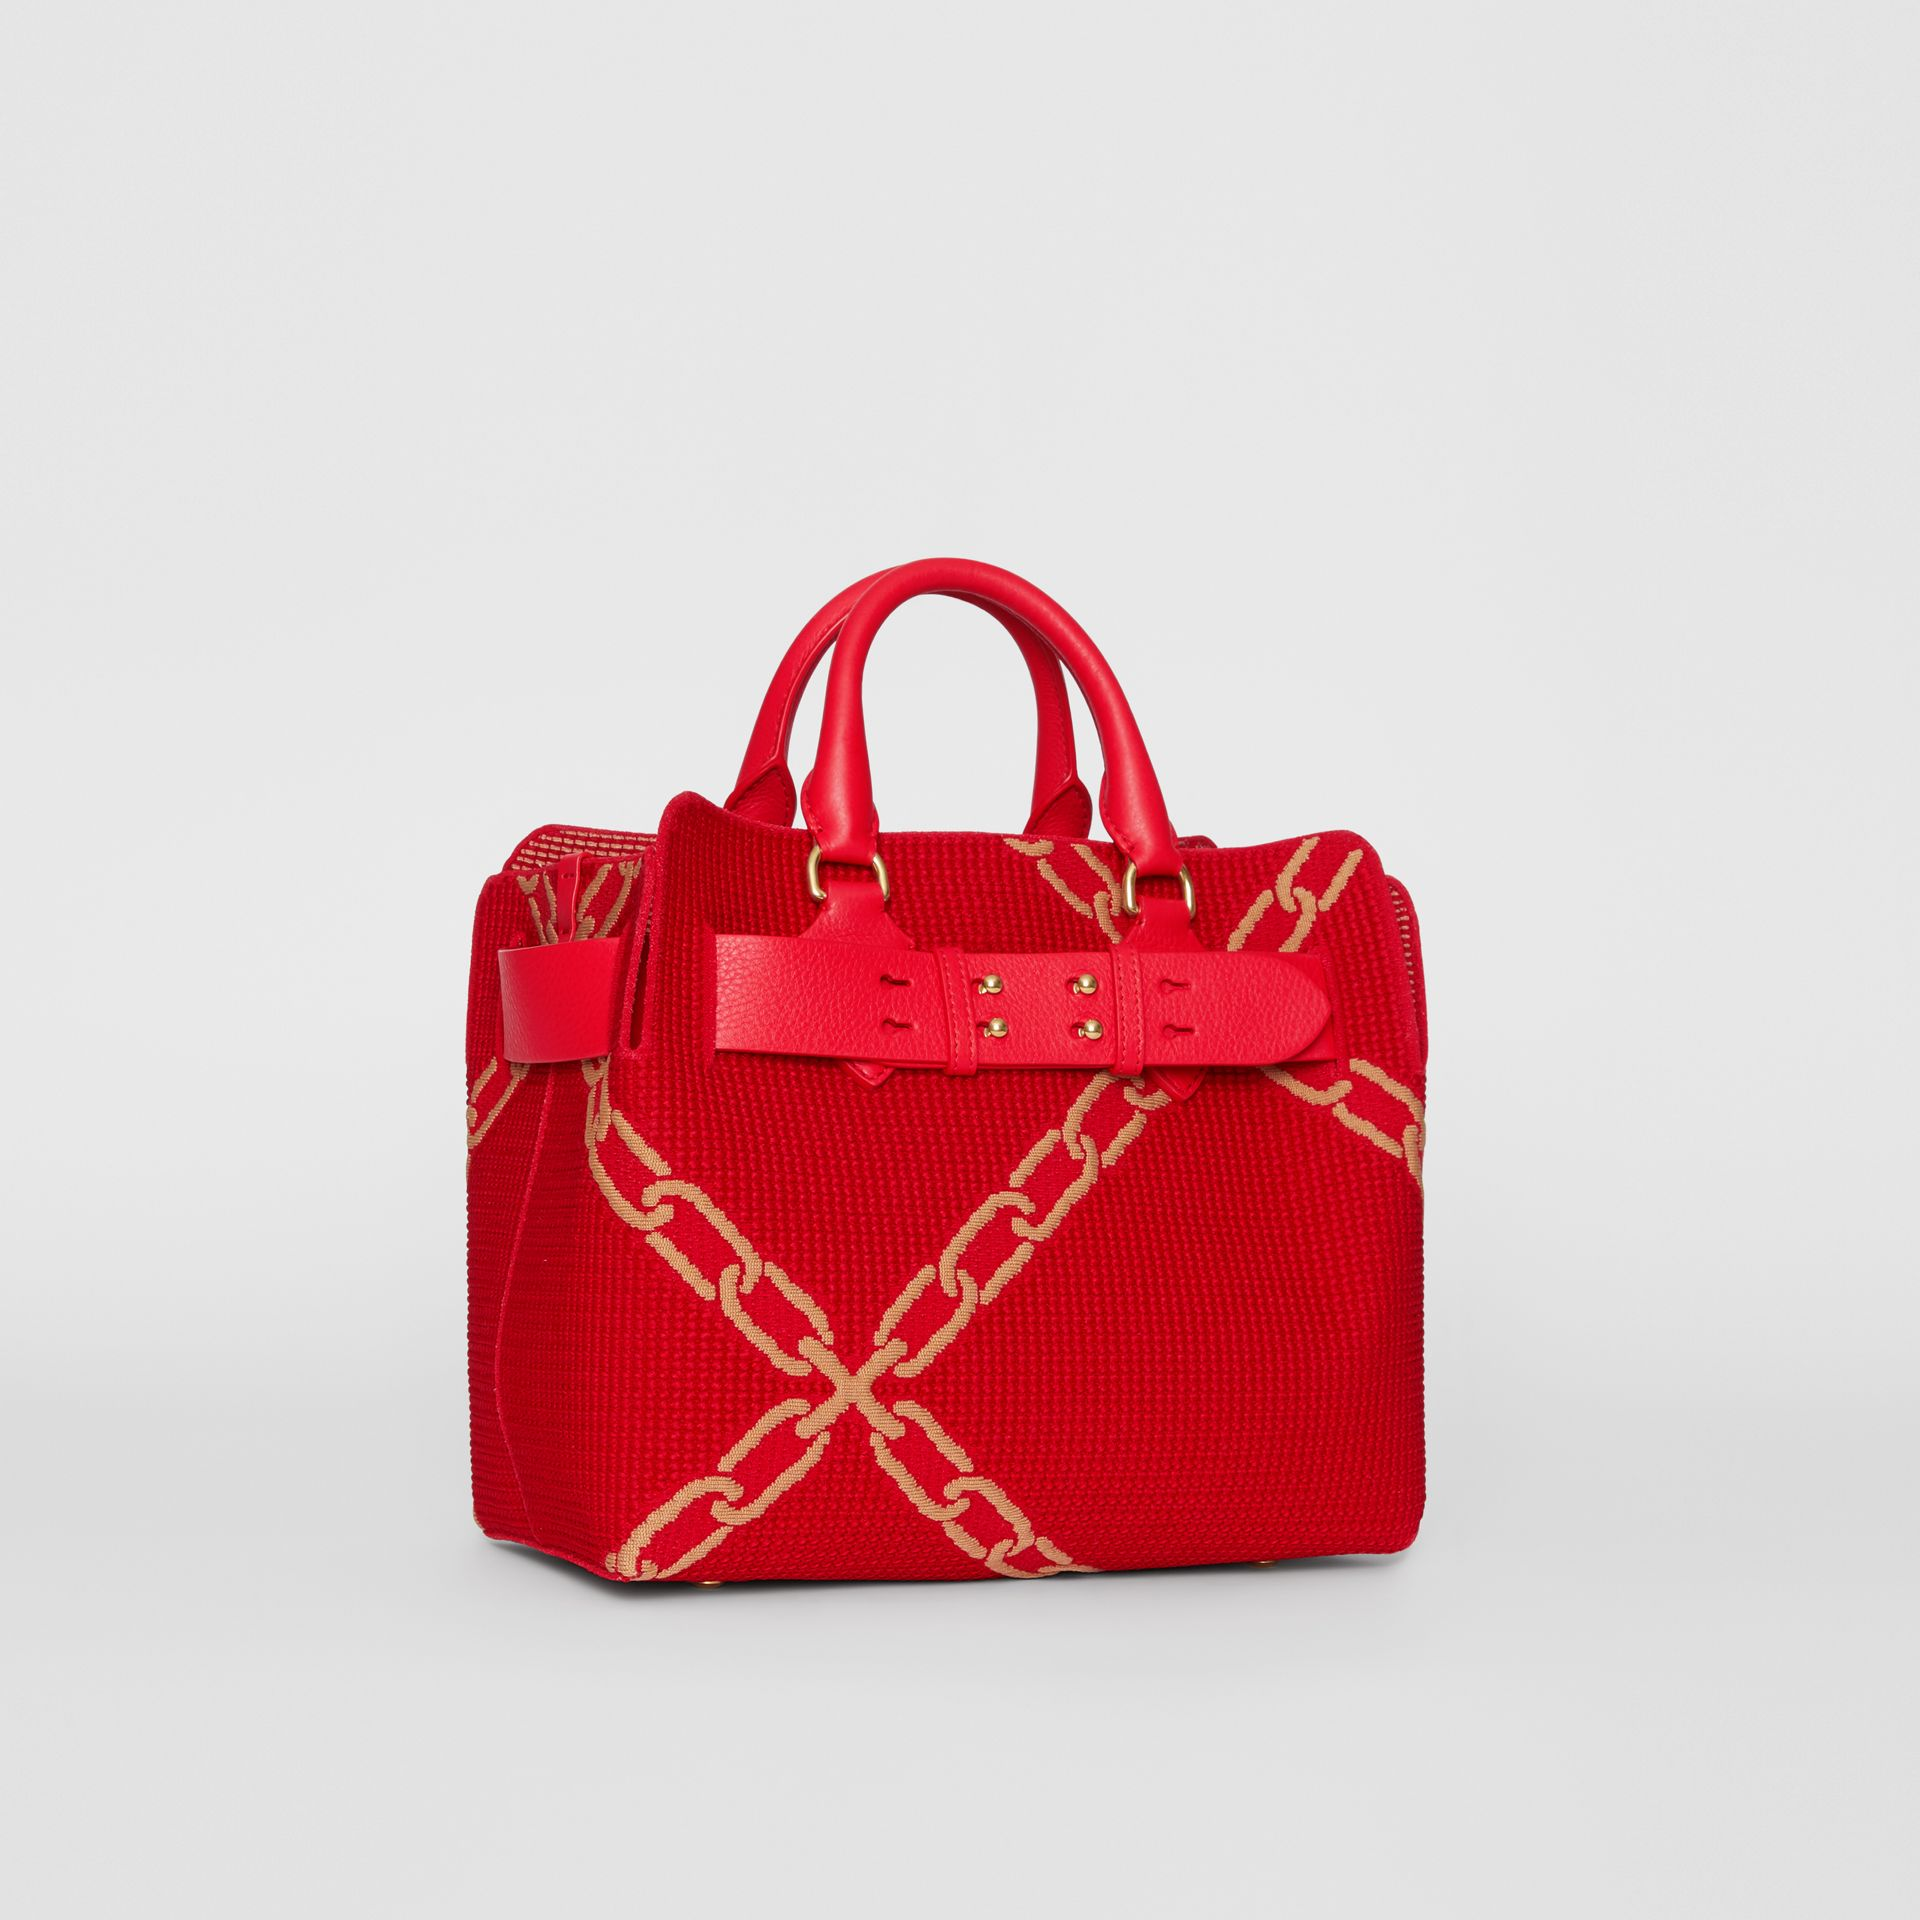 The Small Belt Bag mit Kettenmuster in Strickoptik (Leuchtendes Rot/helles Camelfarben) - Damen | Burberry - Galerie-Bild 4